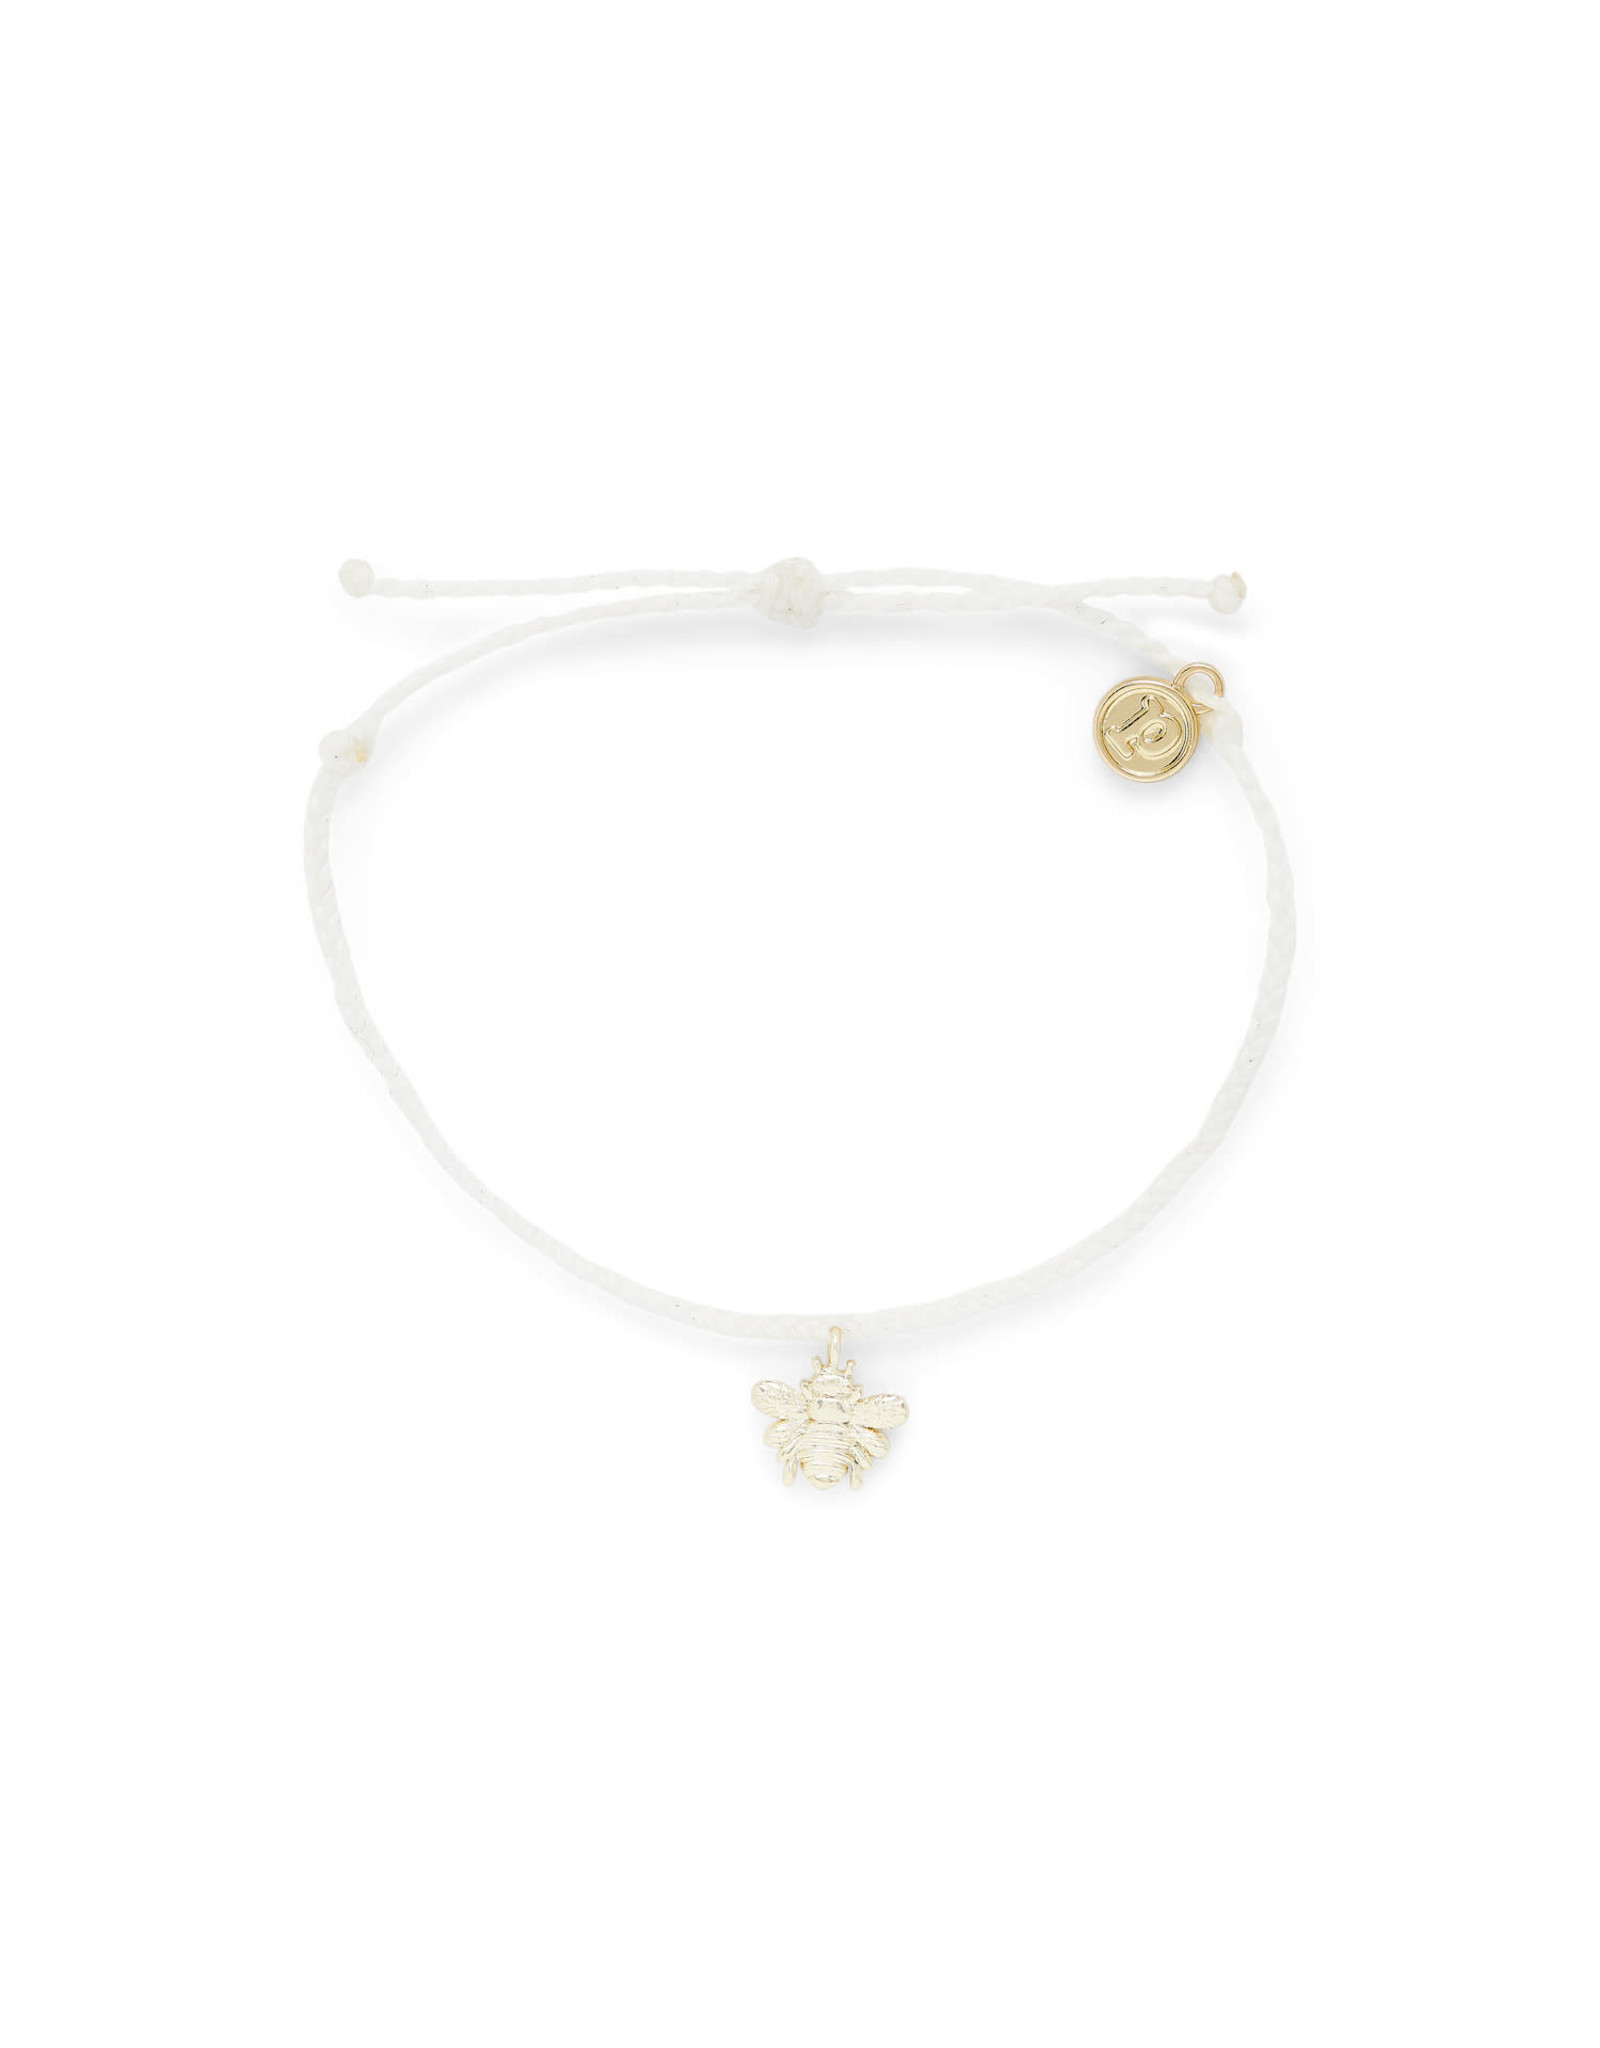 PURA VIDA BRACELET GOLD BEE NATURAL